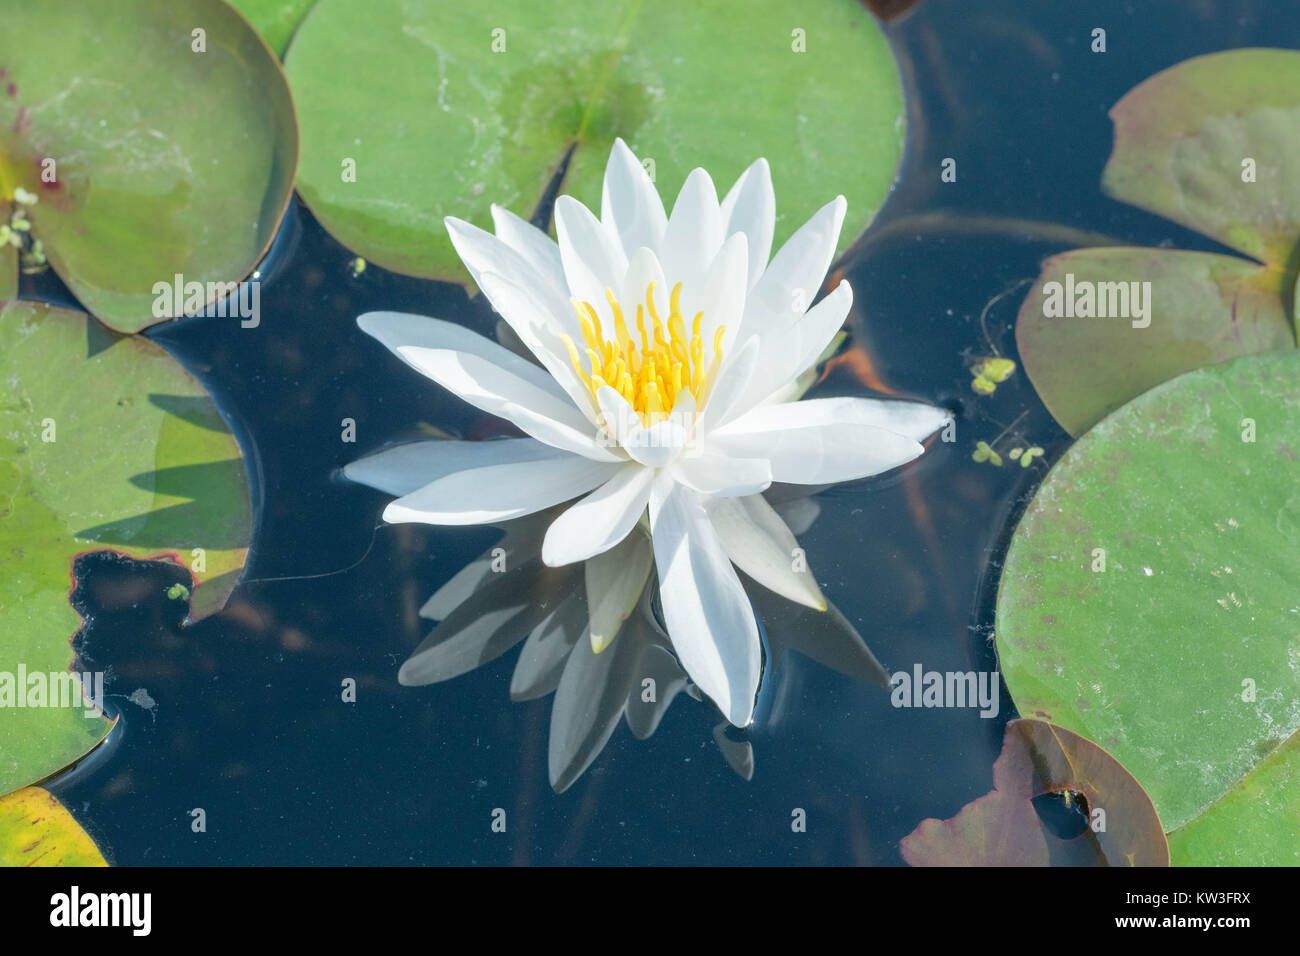 Up Close Isolated White Lotus Flower With A Yellow Center In A